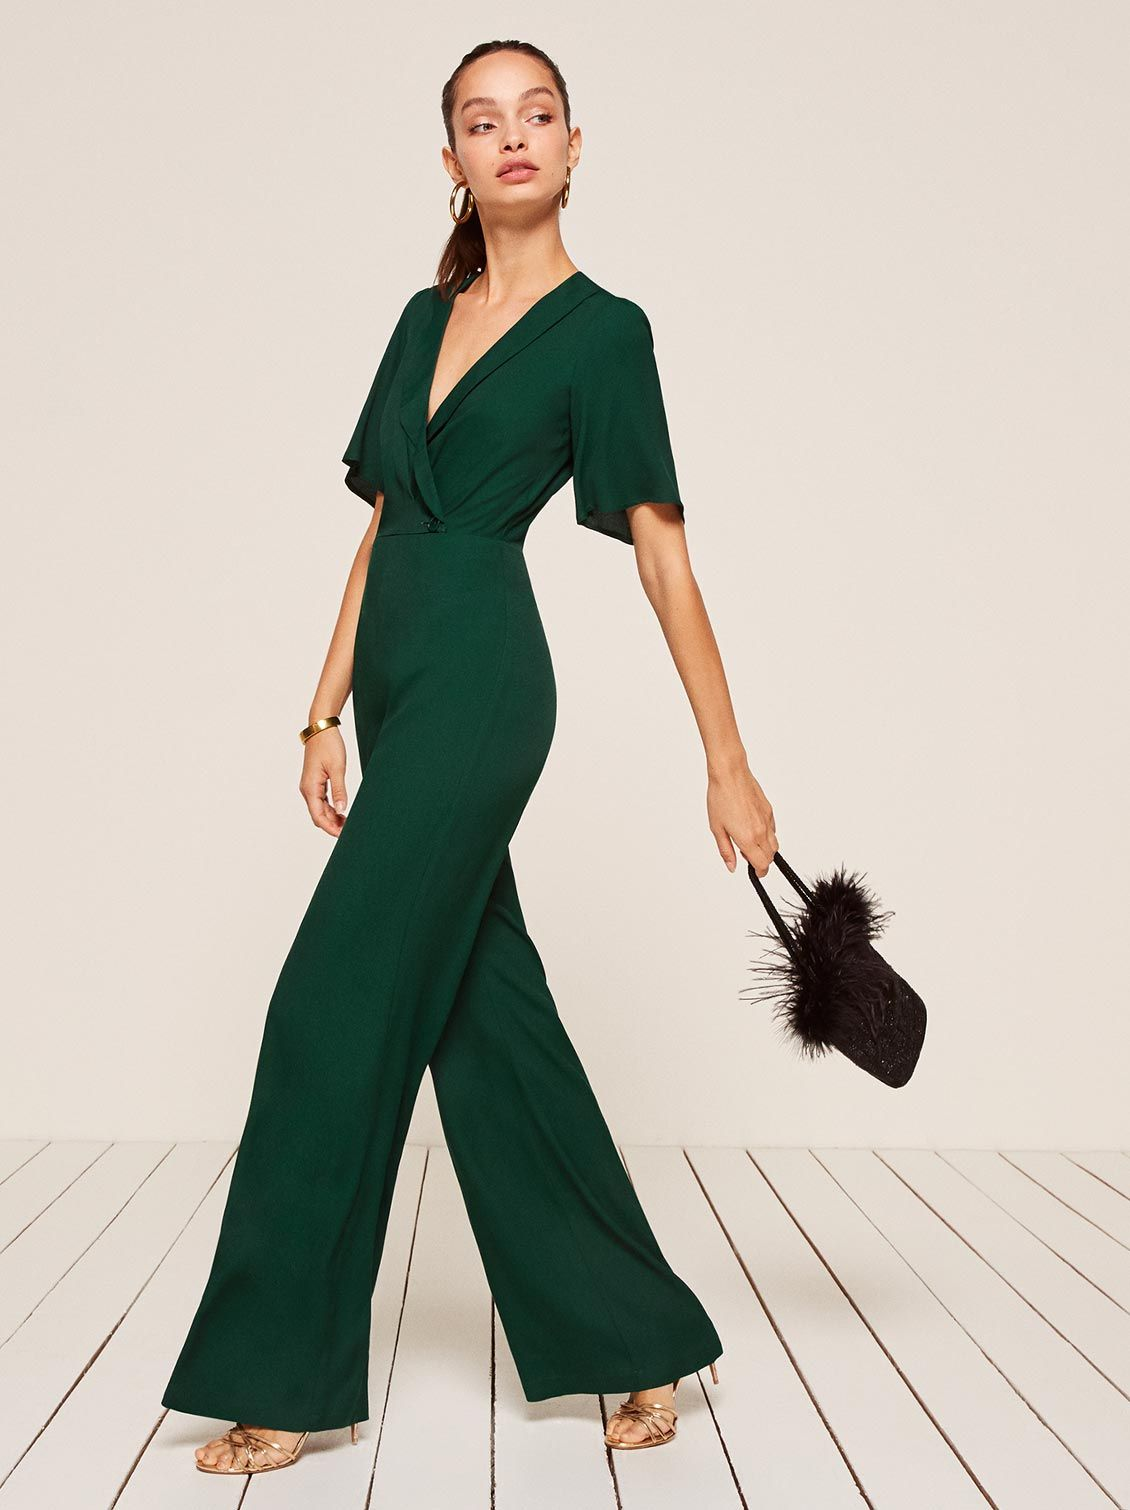 191c168a71bc1 Emerald green jumpsuit ethically made by reformation. Adding to my spring  wish list.